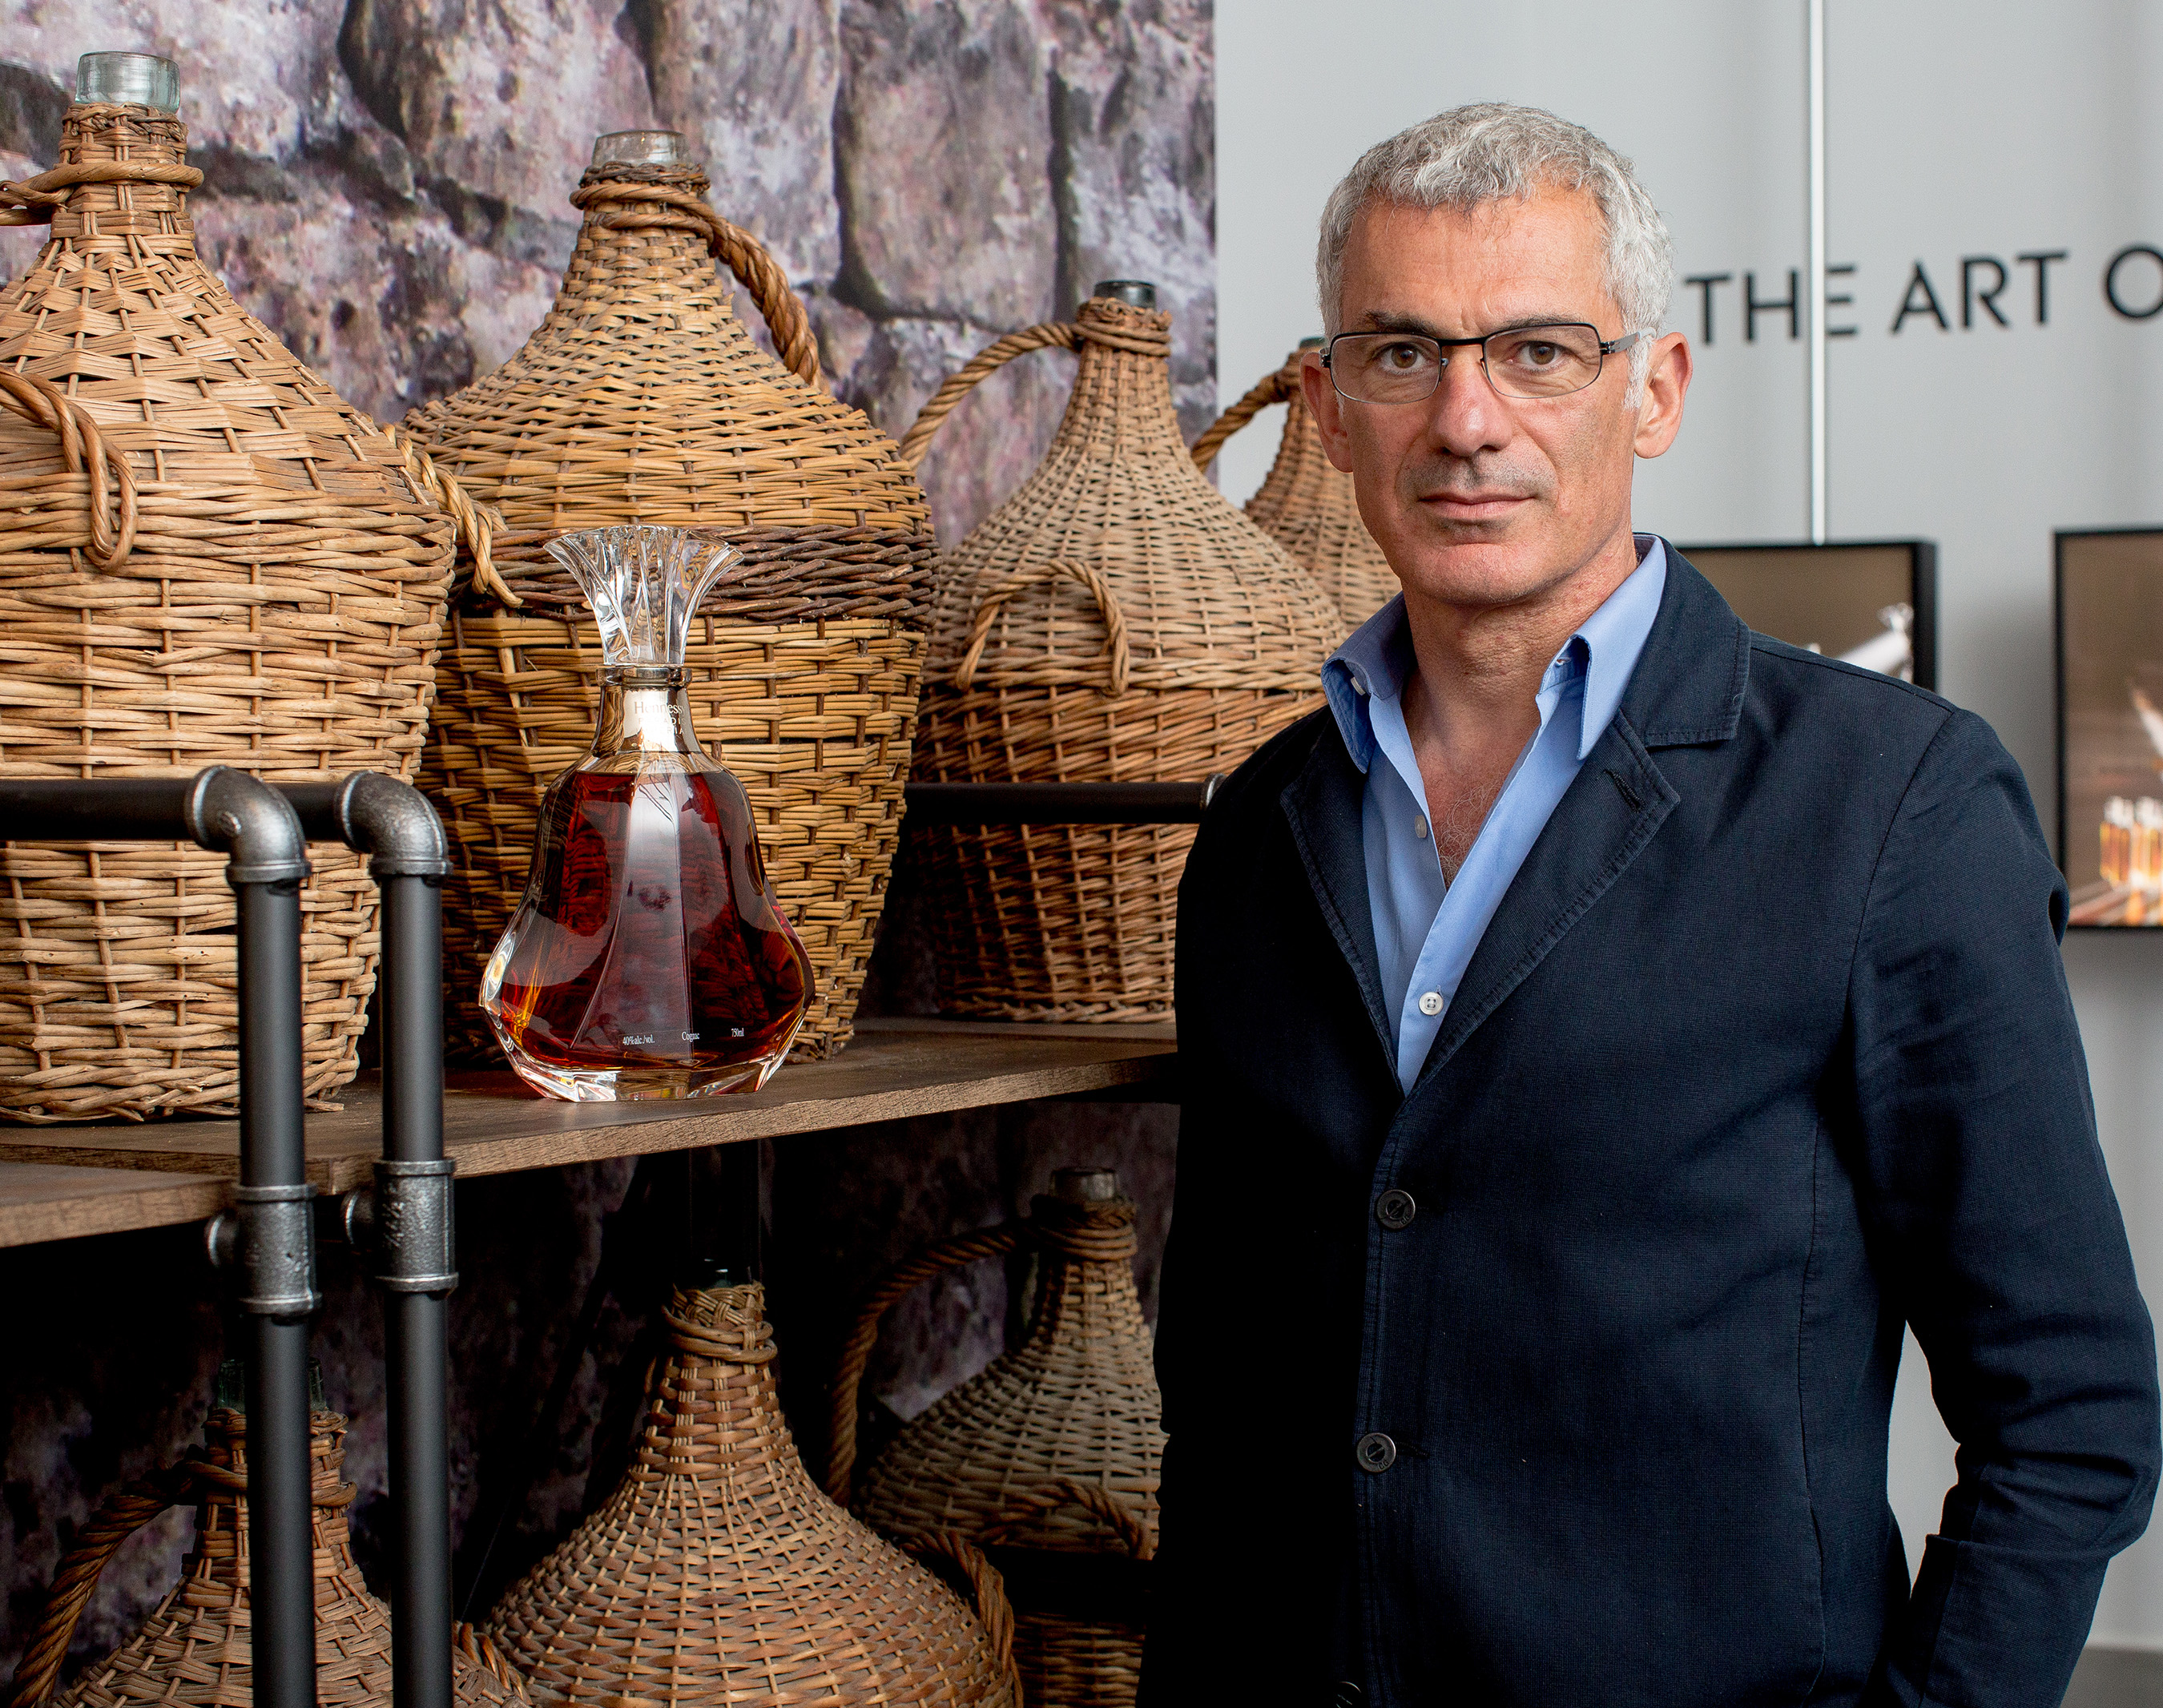 The Decanter: A Gem-Like Setting by Artist Arik Levy